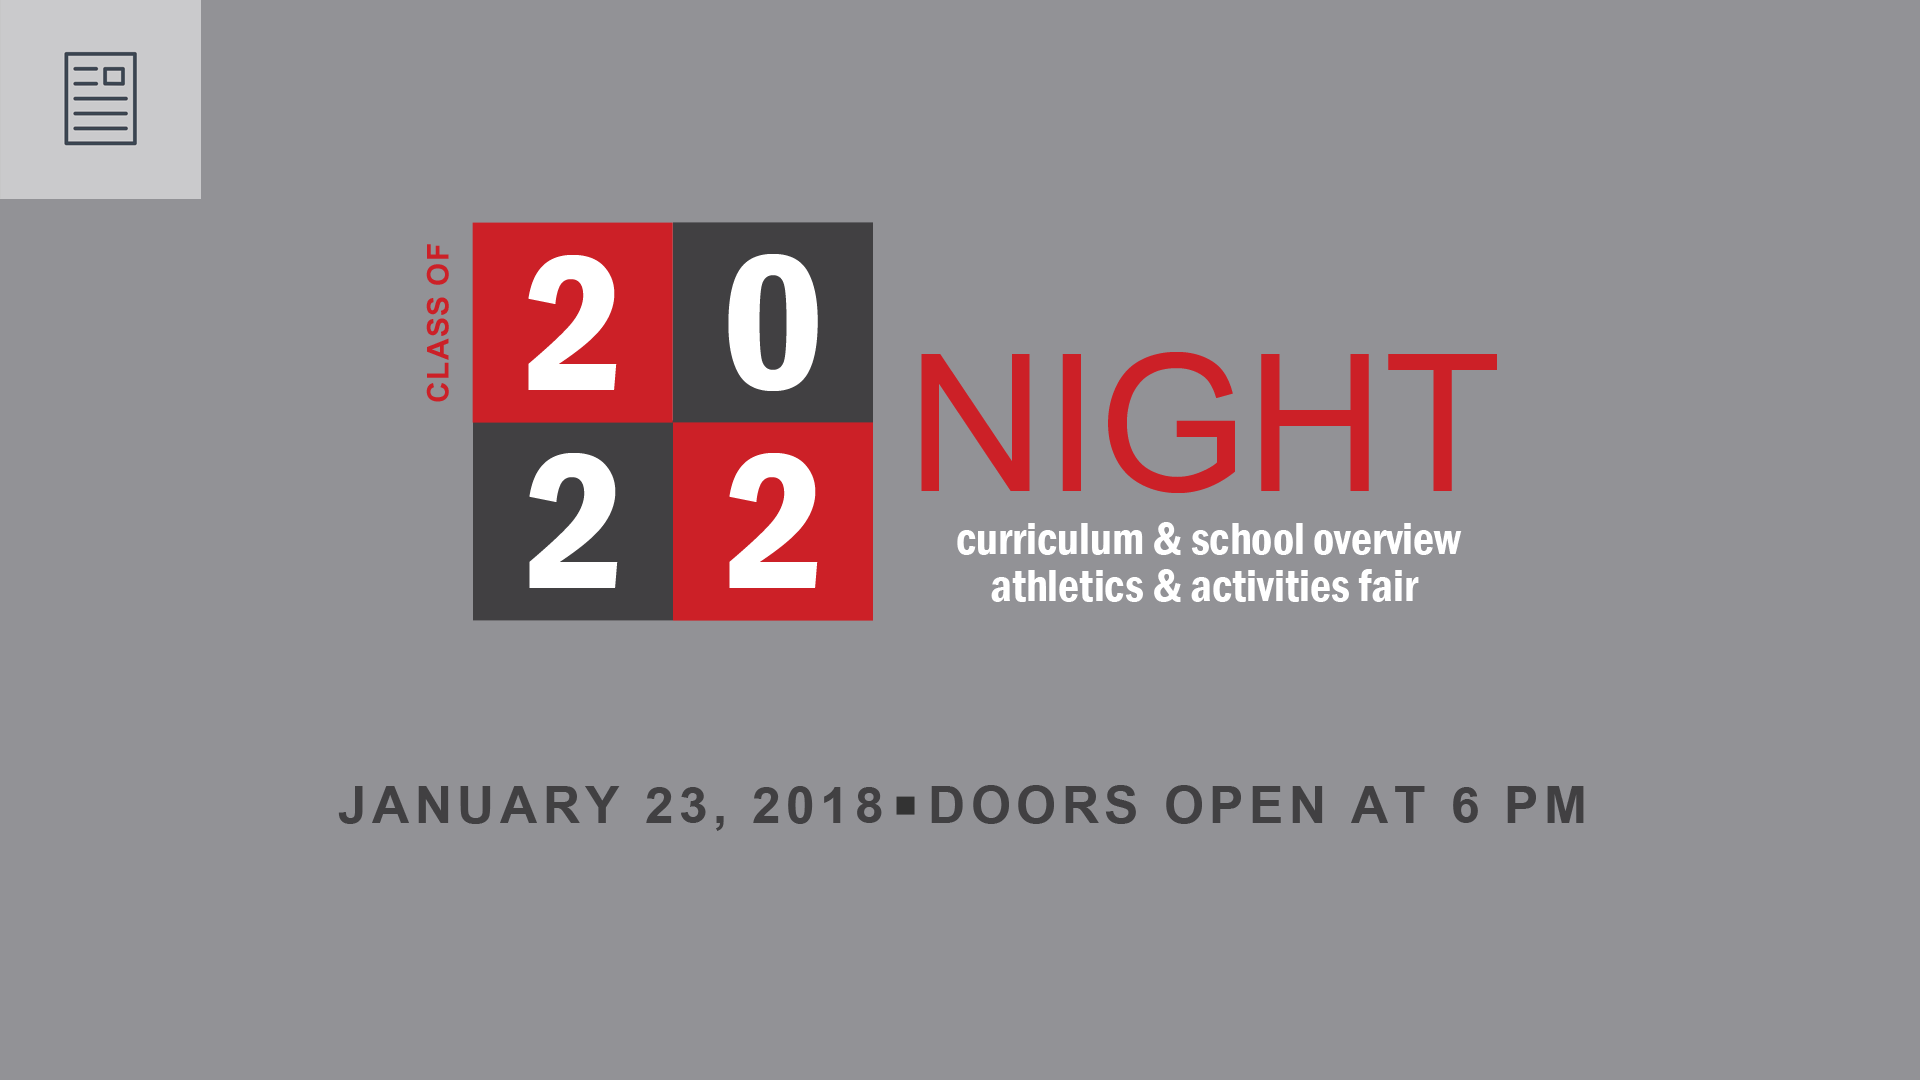 MHS to welcome Class of 2022 students and parents to Curriculum Night and the annual activities and athletics fair.